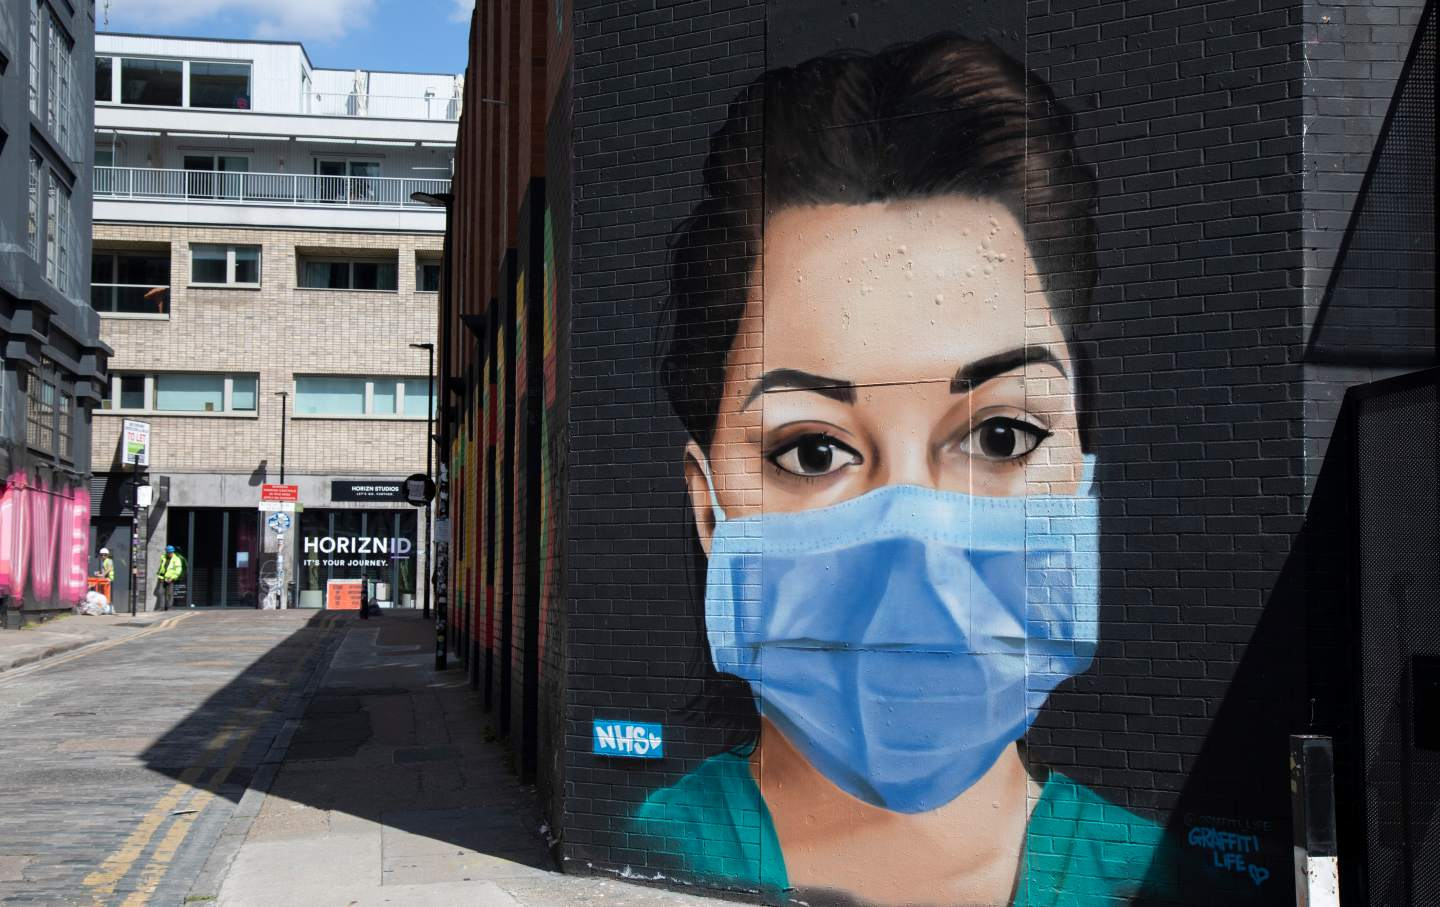 A street mural of an NHS nurse wearing a face mask in Shoreditch, London. (Mike Kemp / In Pictures via Getty Images)